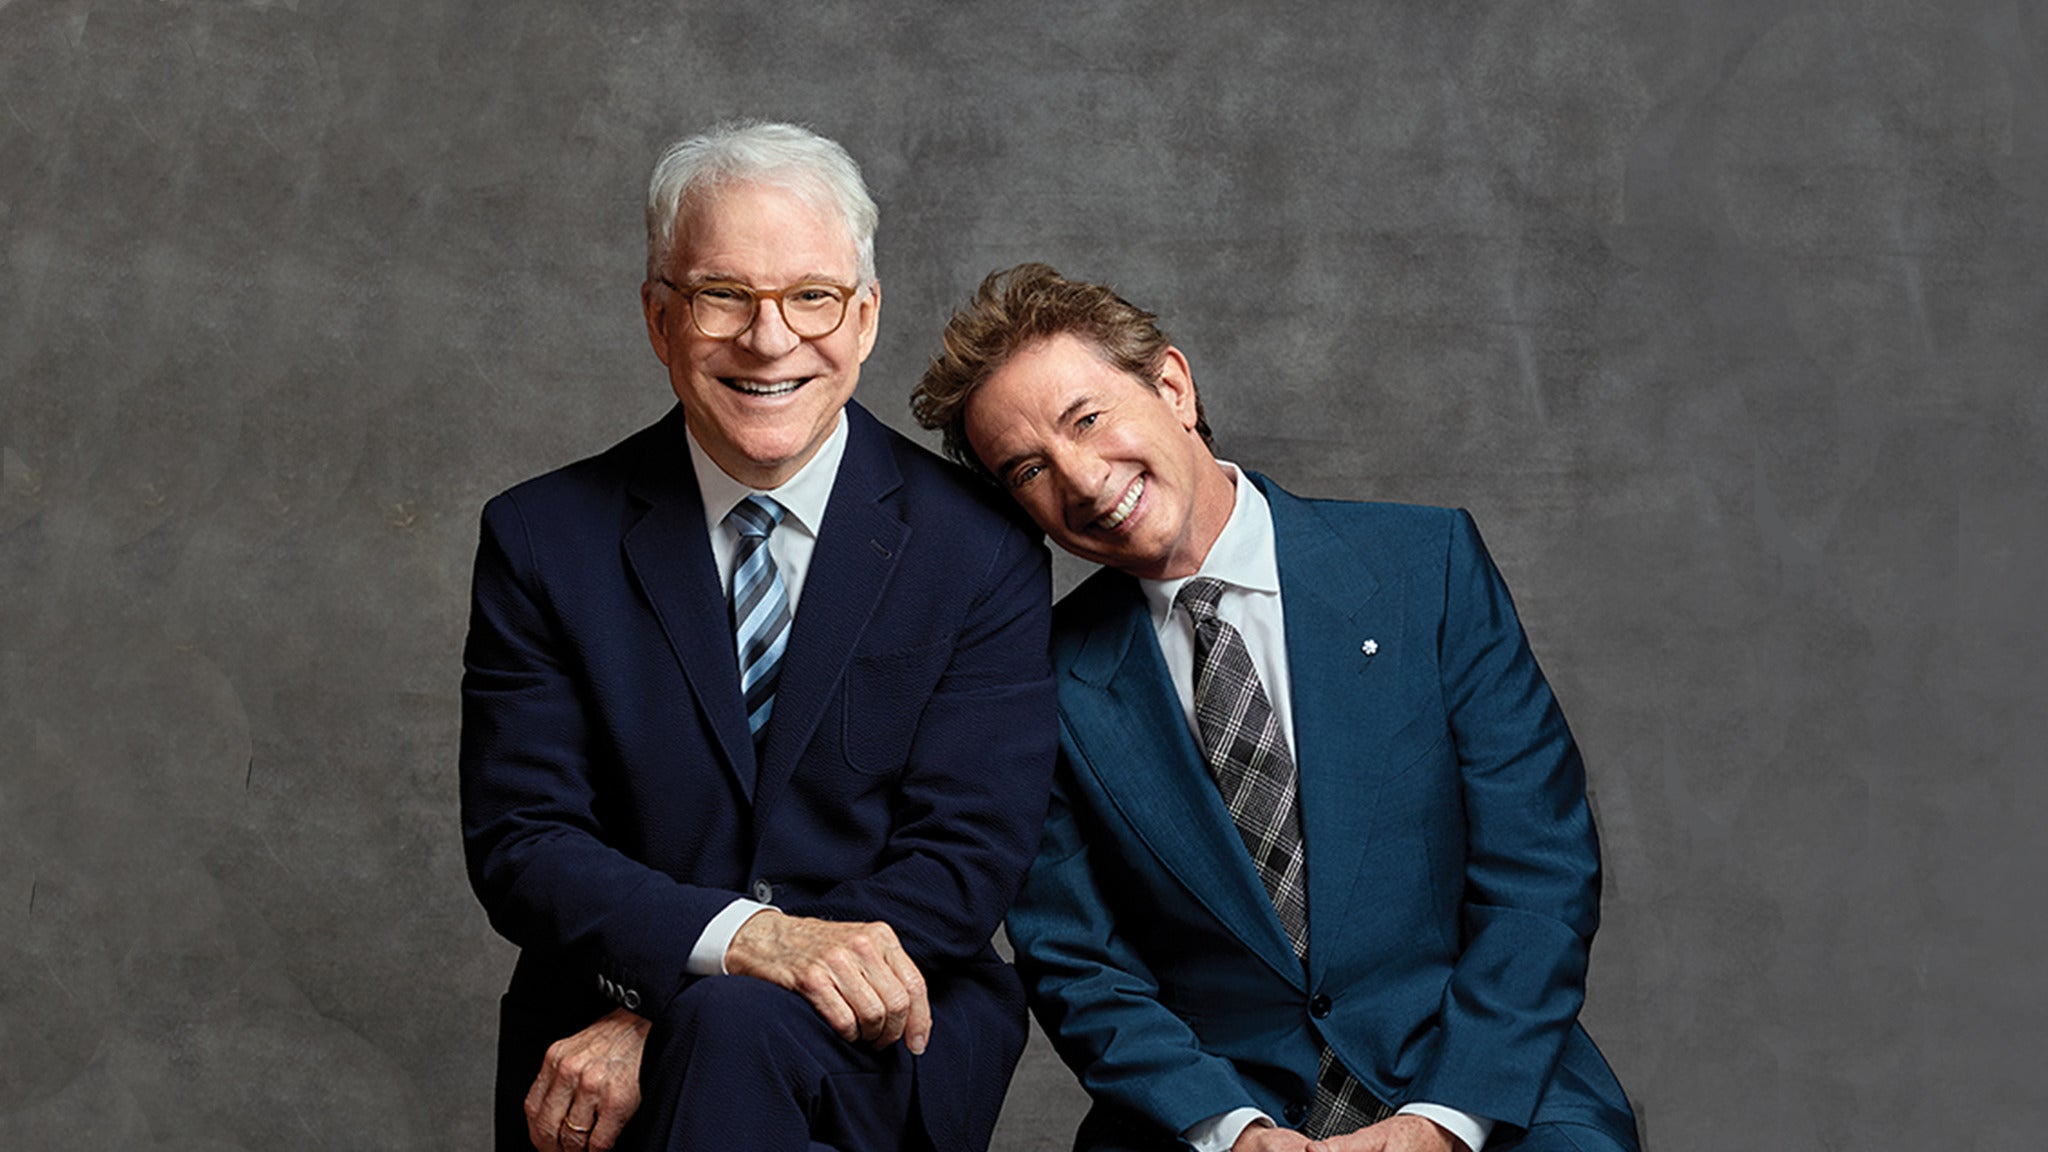 Steve Martin w/ Martin Short at Palace Theatre Stamford